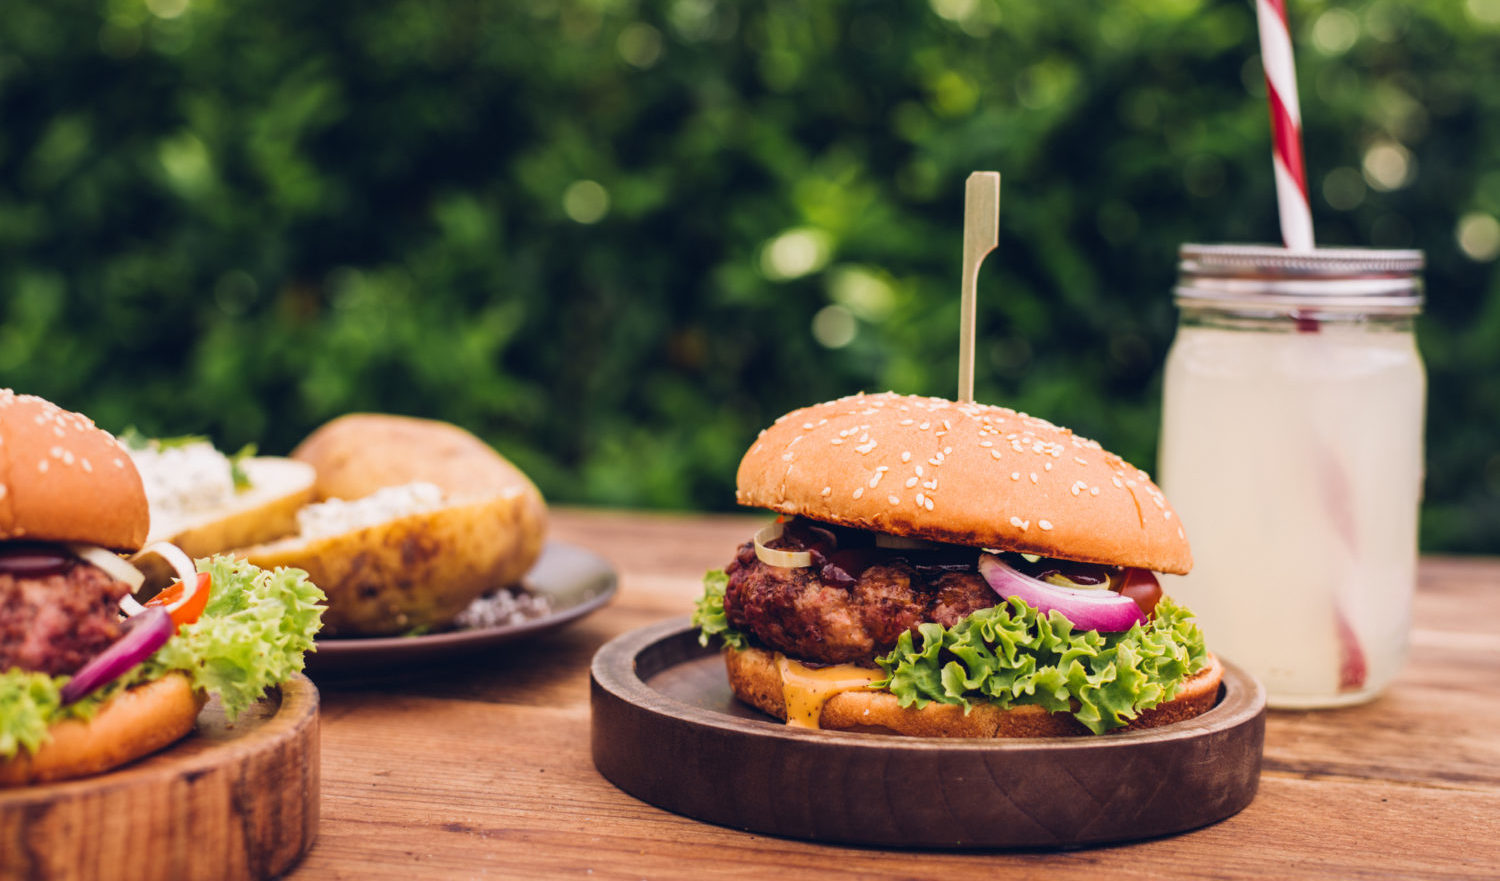 Gourmet cheese burgers with a beverage outdoors on a wooden table in a summery back yard